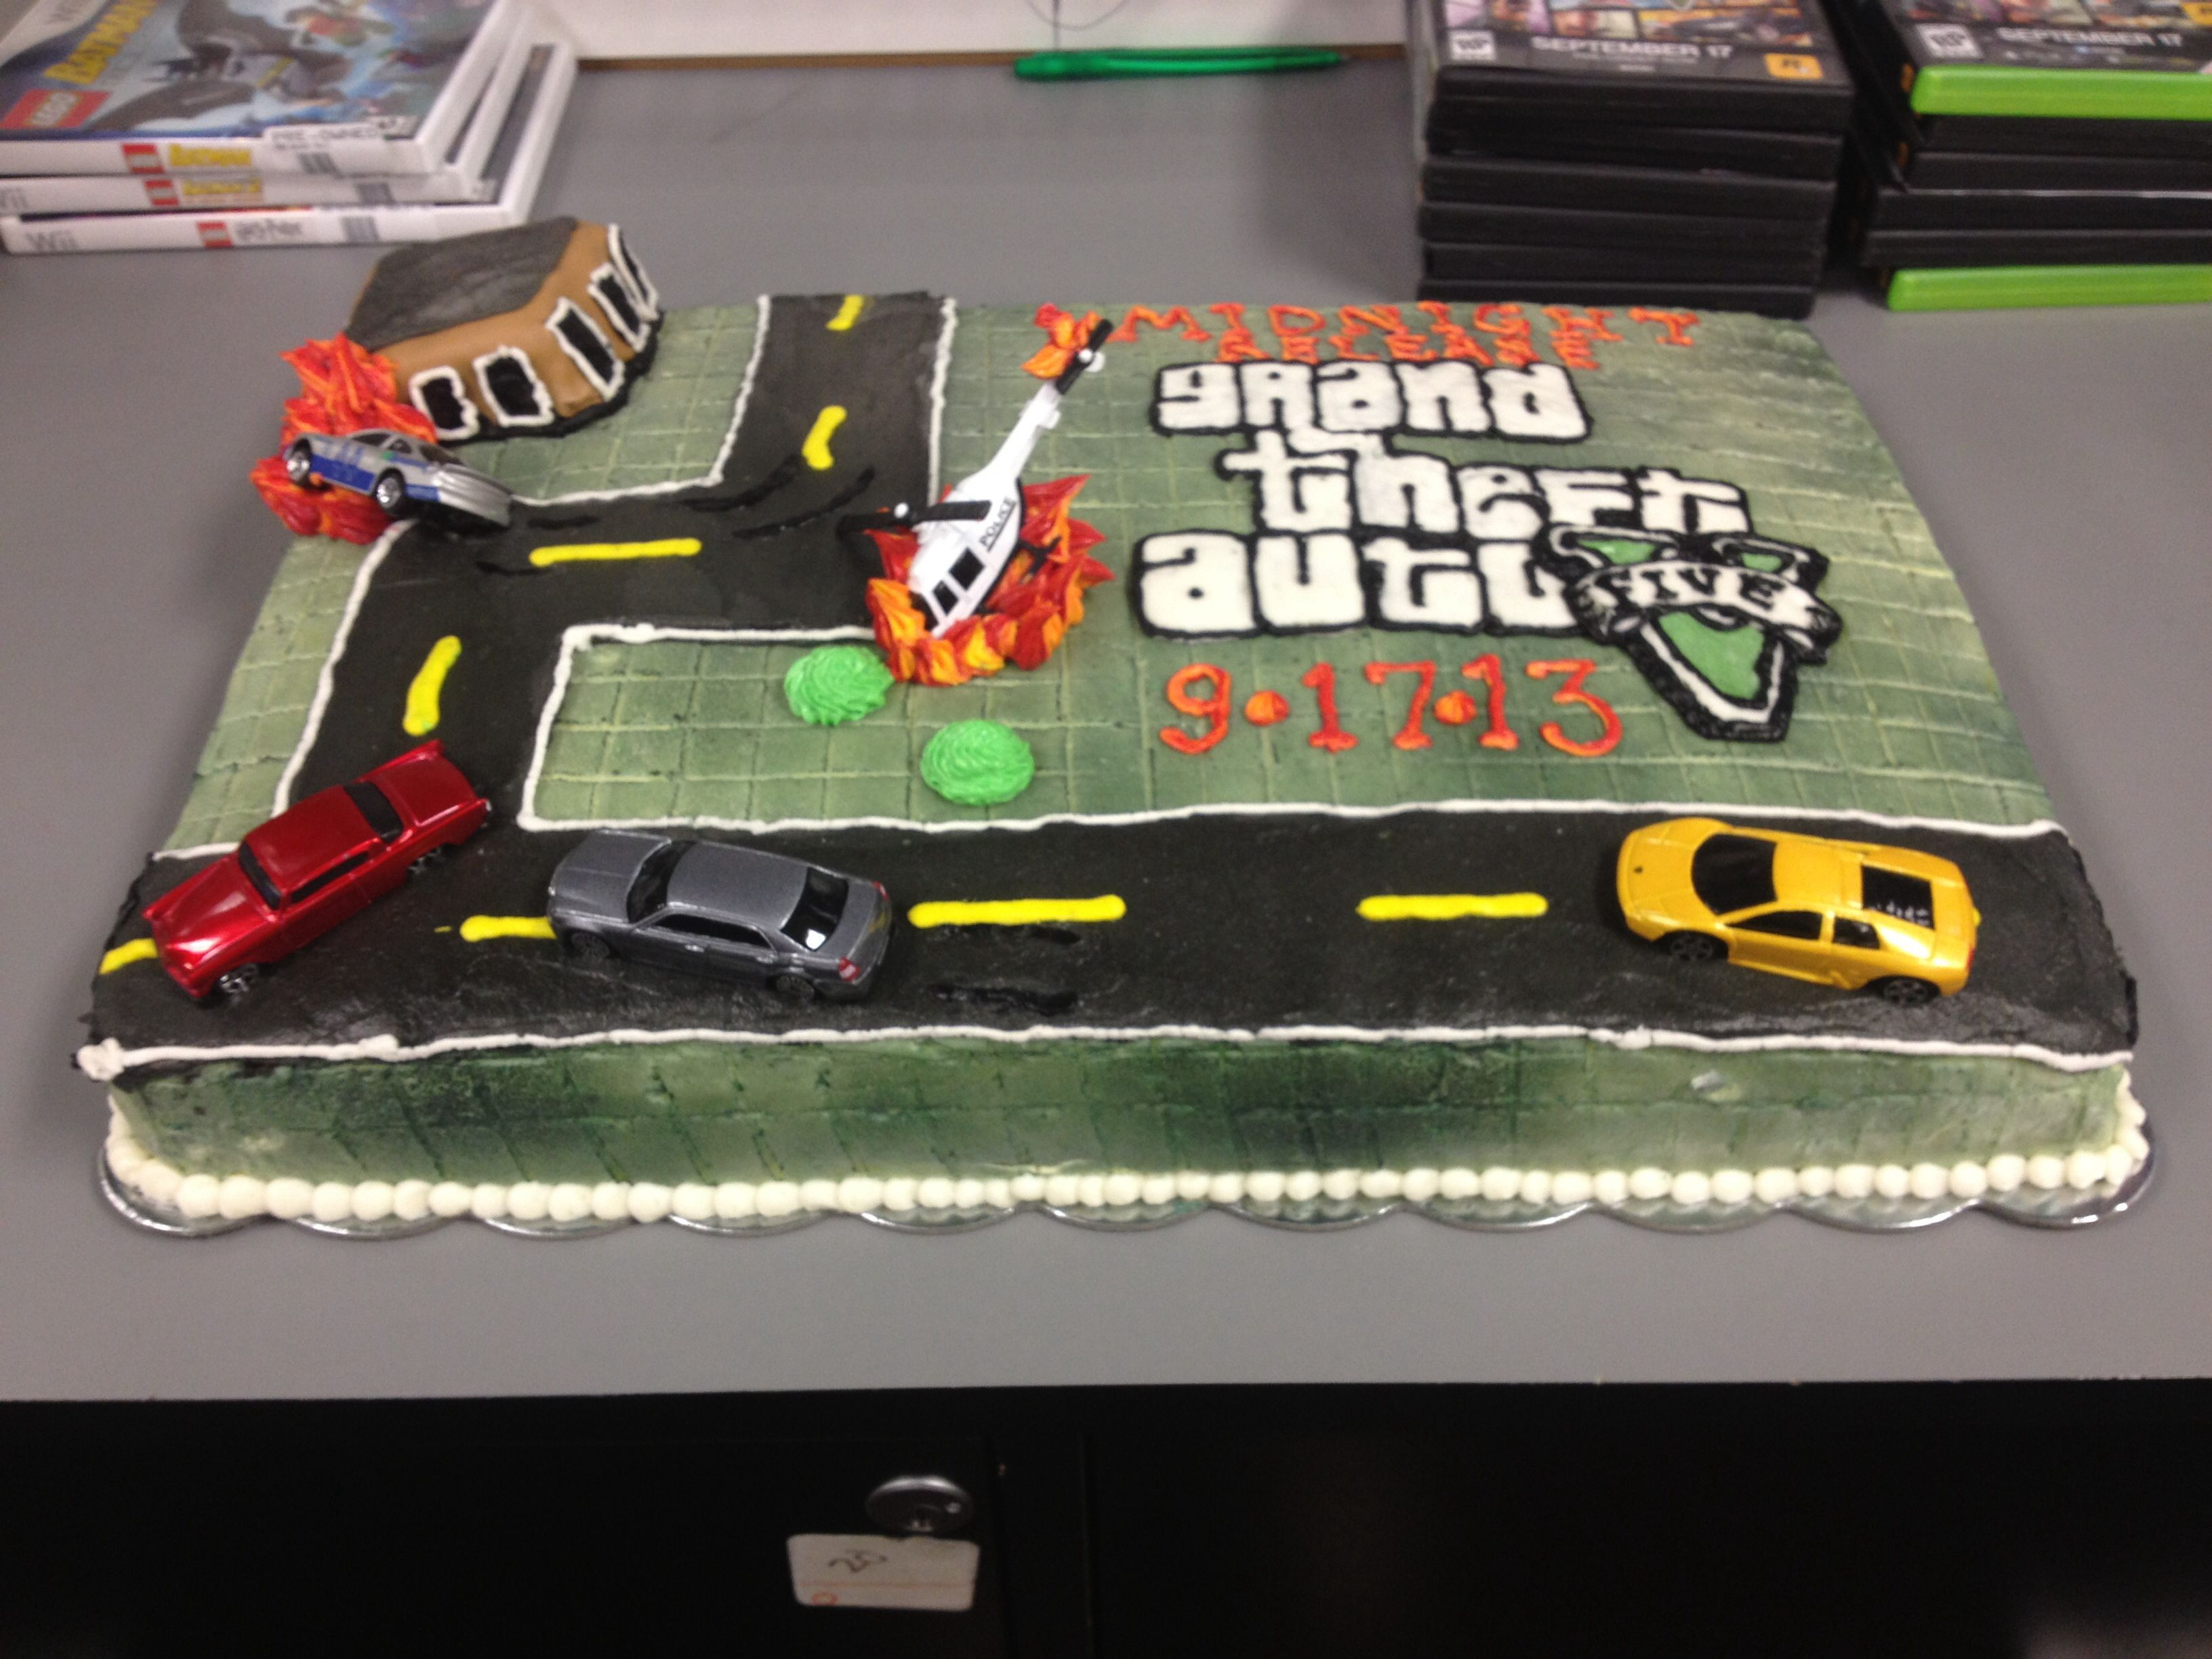 Grand Theft Auto V cake for GameStop | Bake My Day with Candy and ...